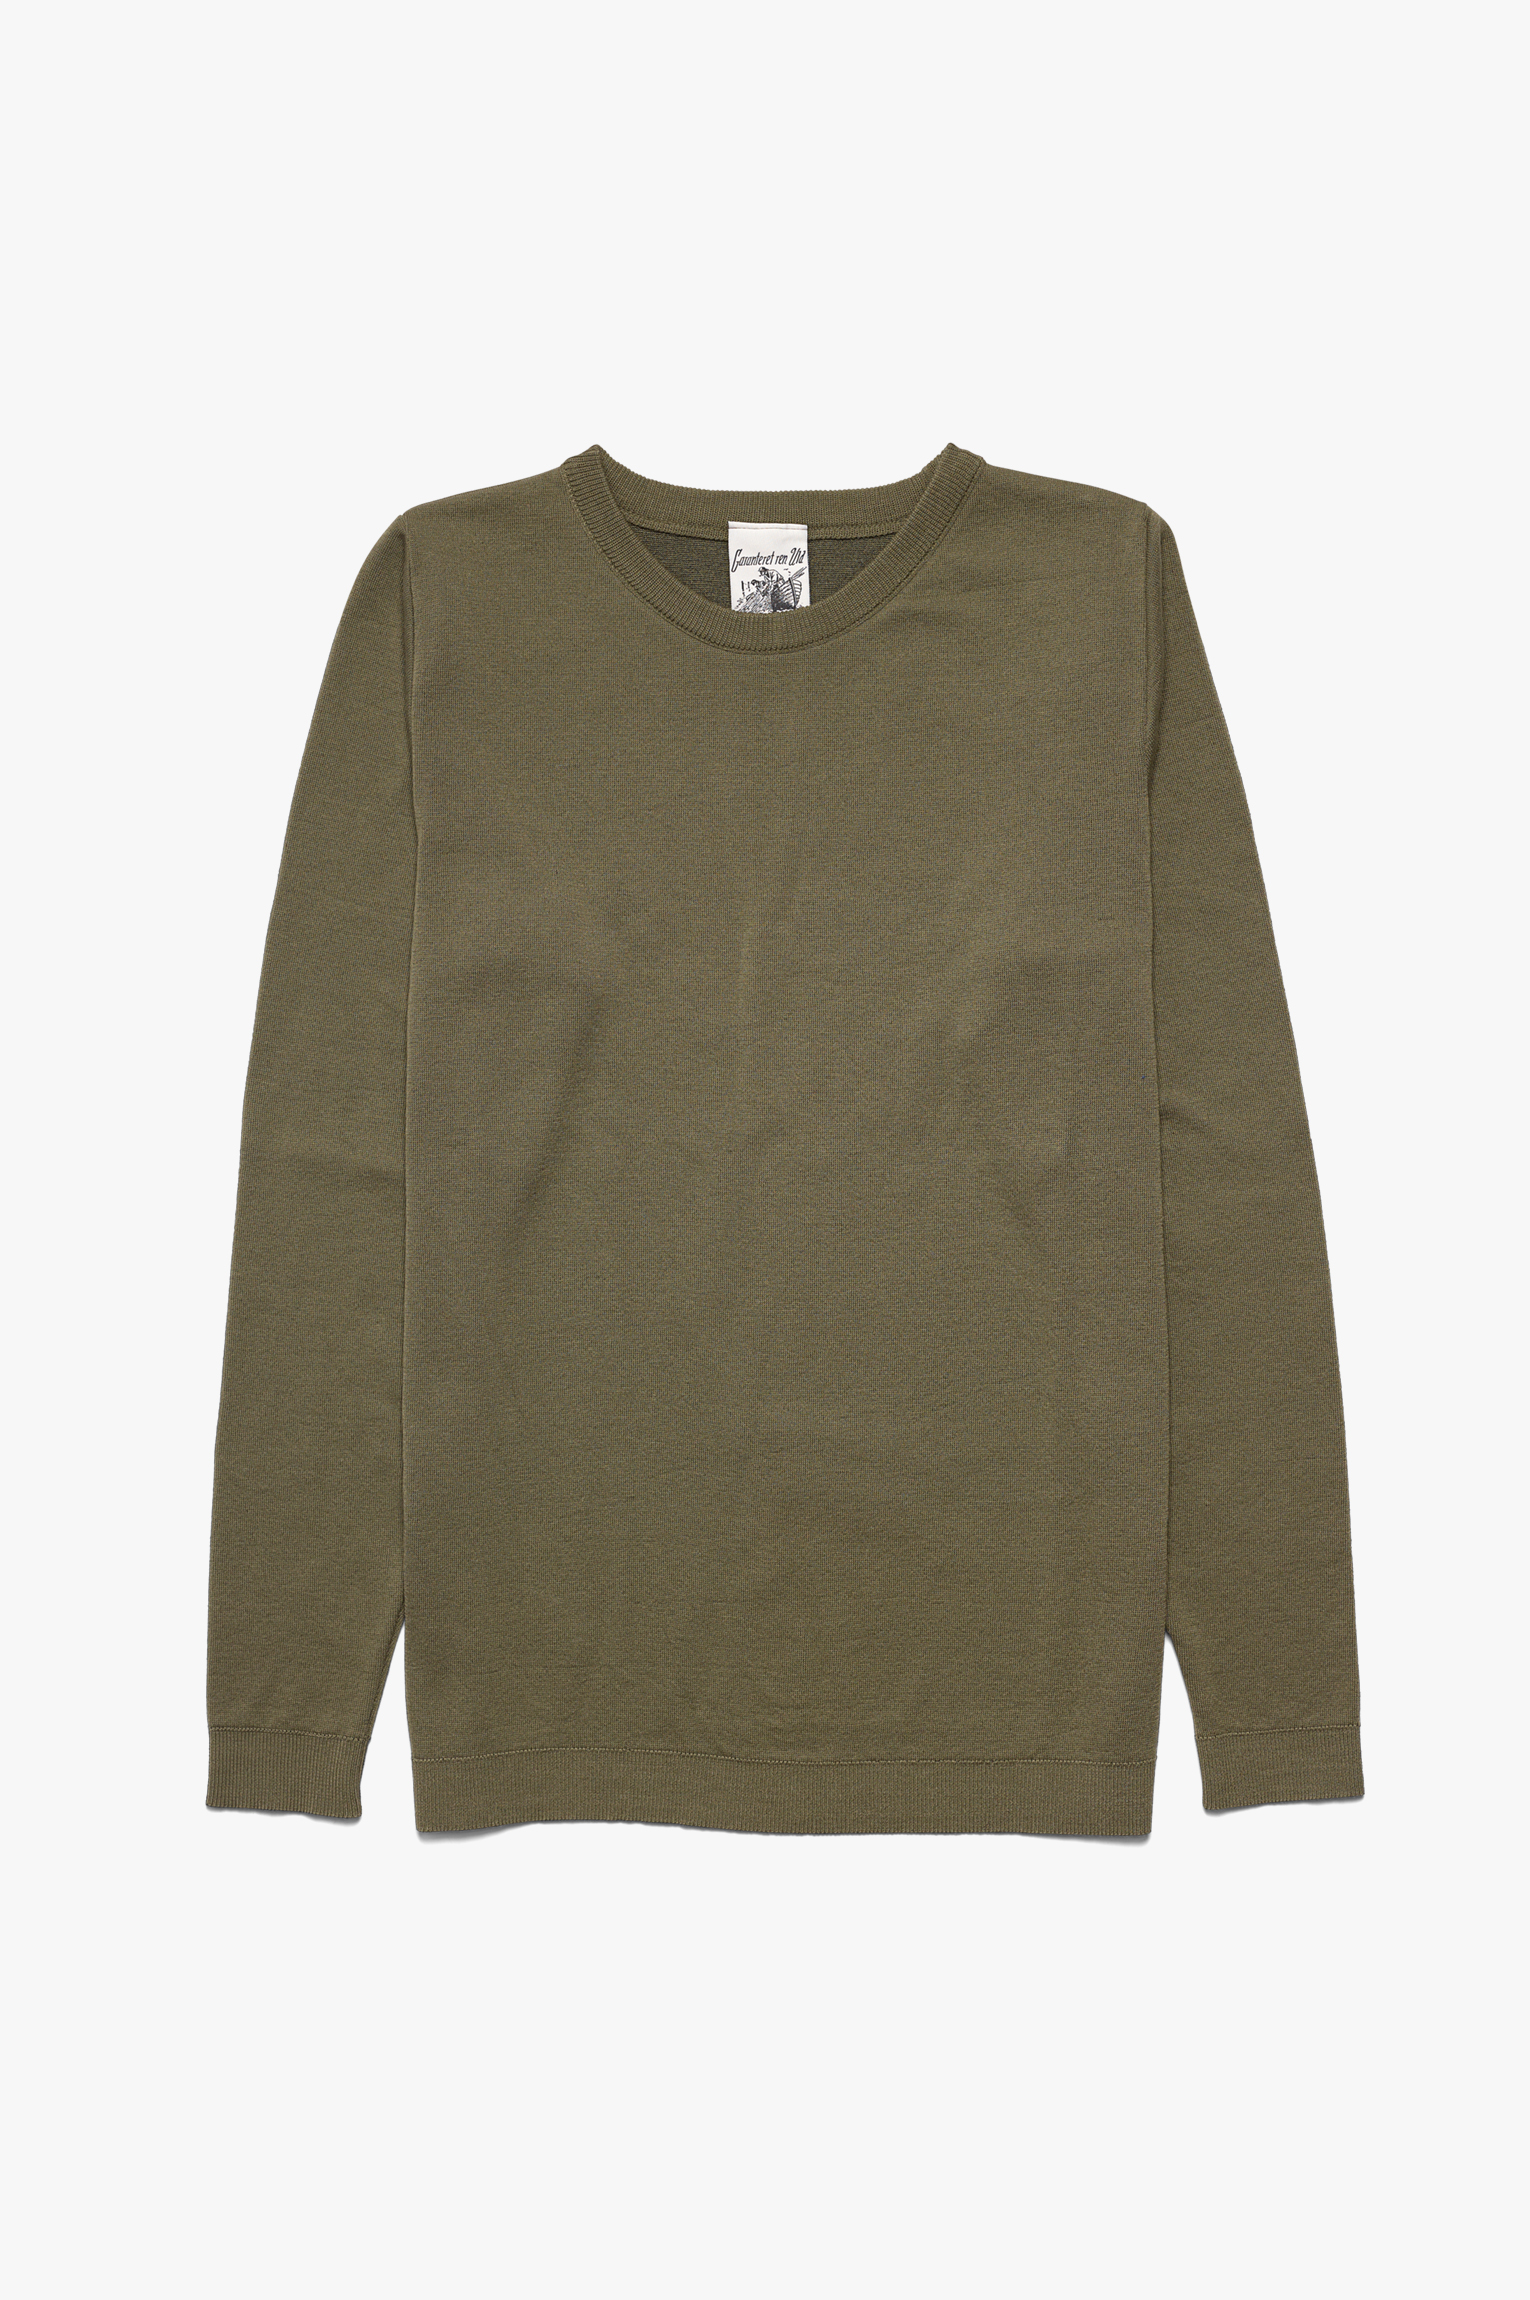 Imitation Crew Neck Green Army